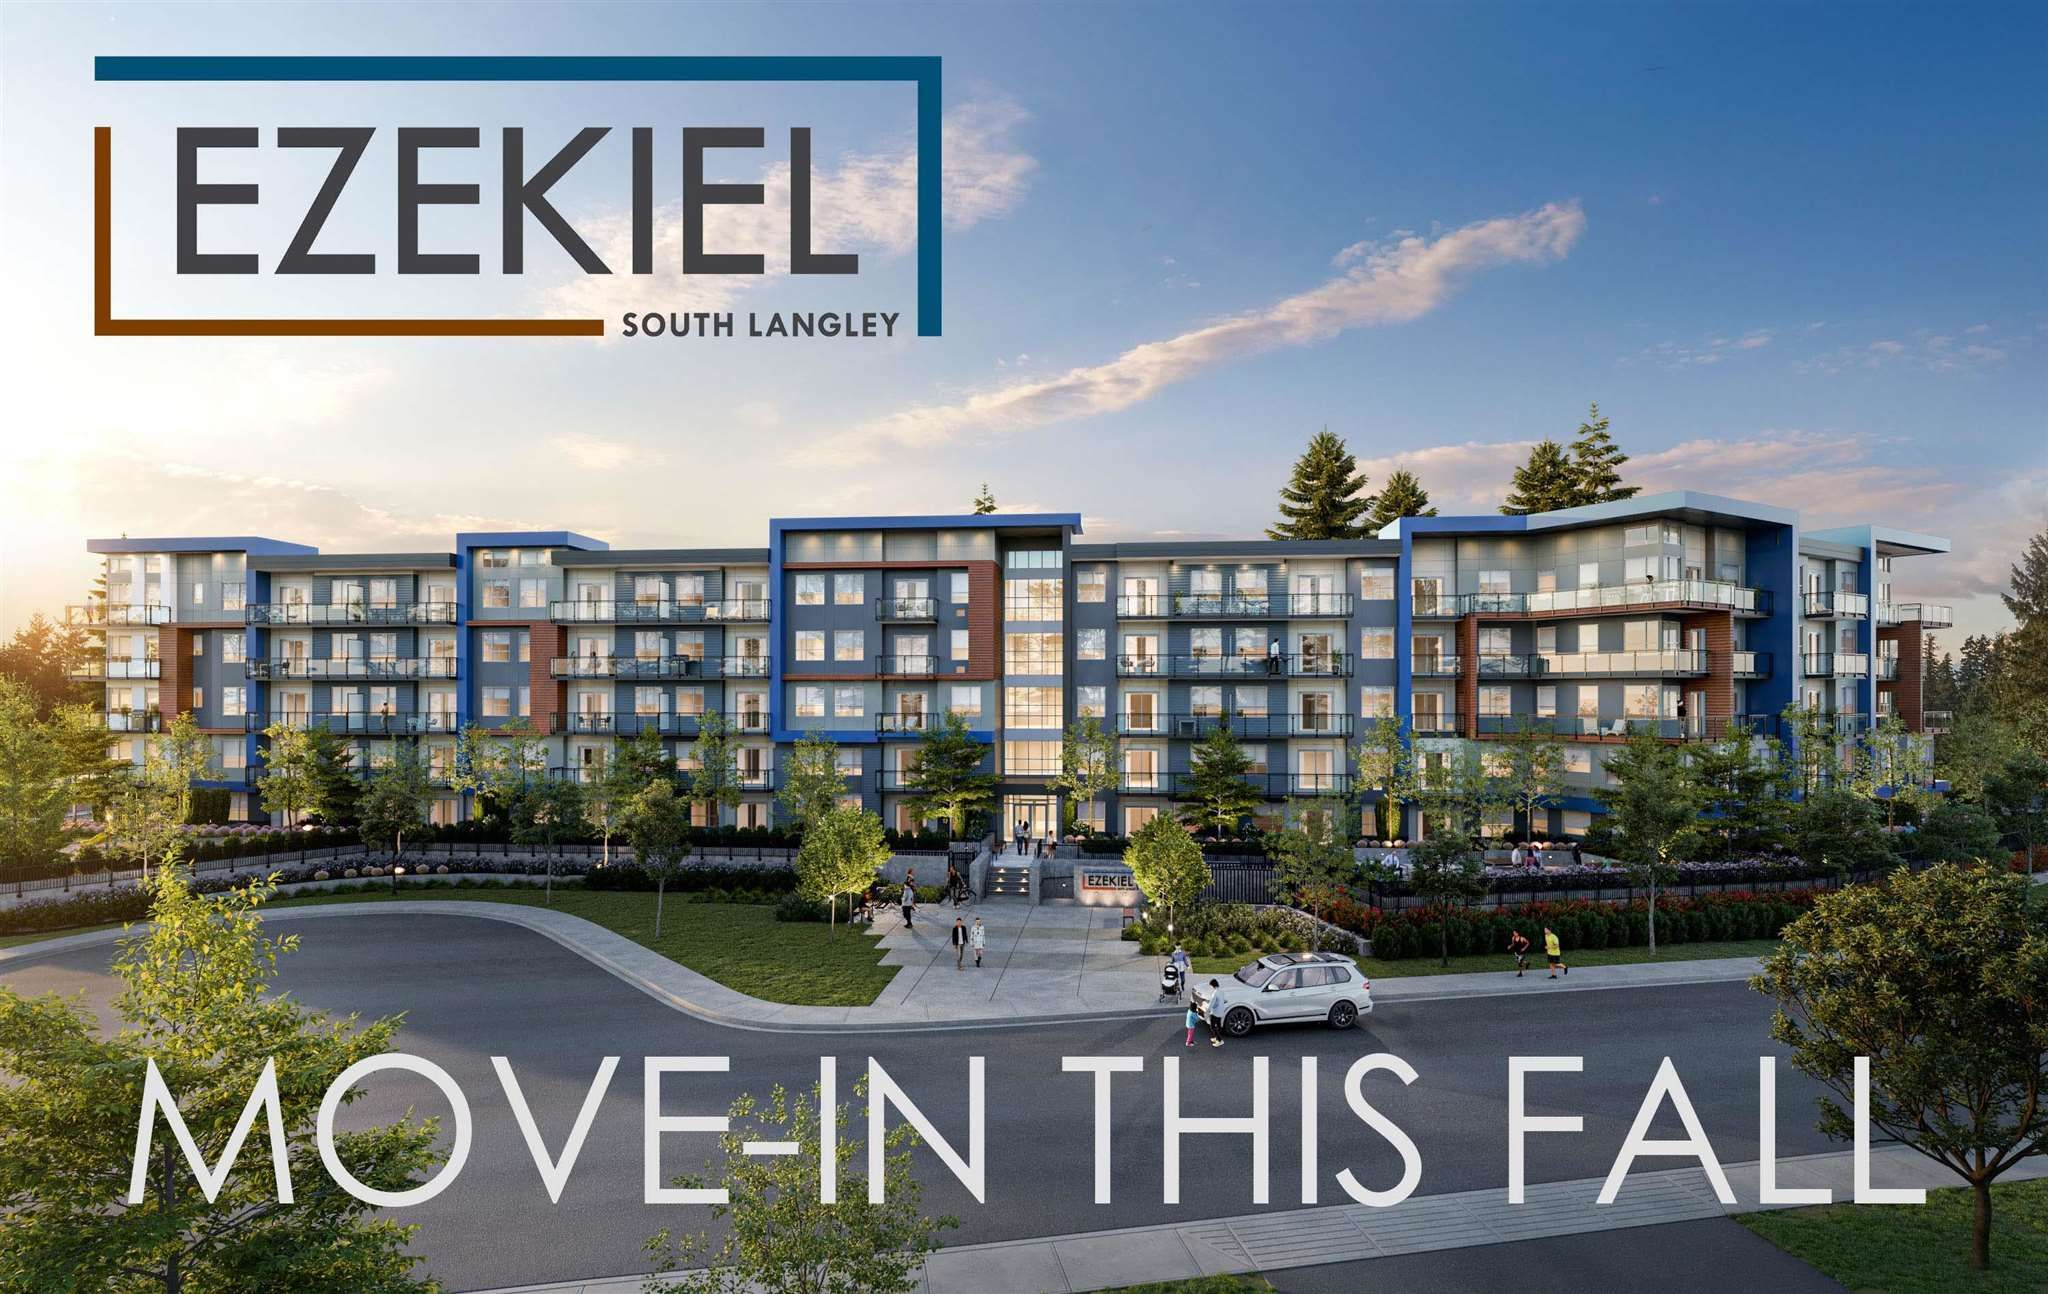 """Main Photo: 416 5486 199A Street in Langley: Langley City Condo for sale in """"Ezekiel"""" : MLS®# R2600461"""